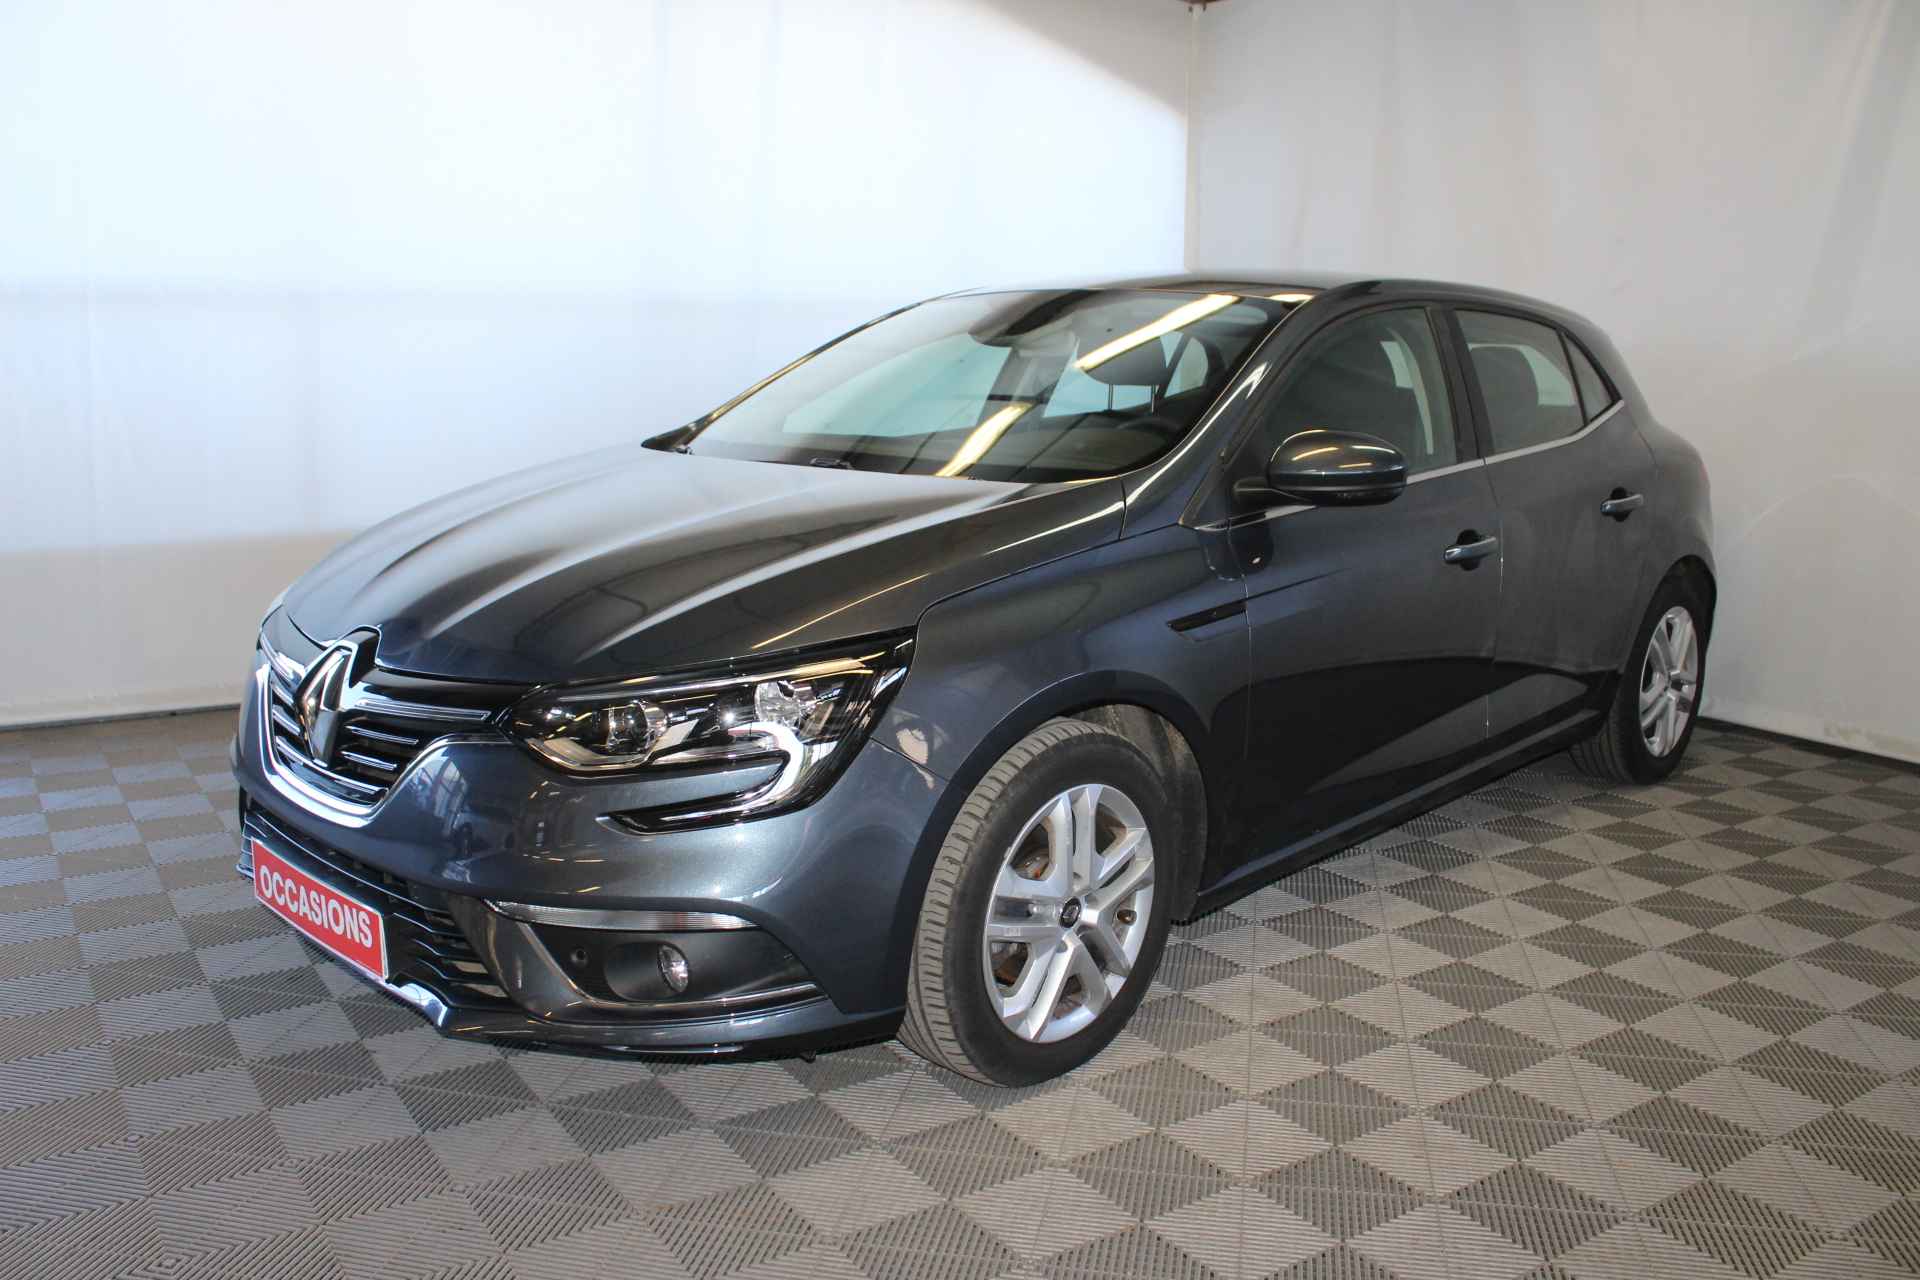 RENAULT MEGANE IV BERLINE BUSINESS dCi 110 Energy EDC Business d'occasion